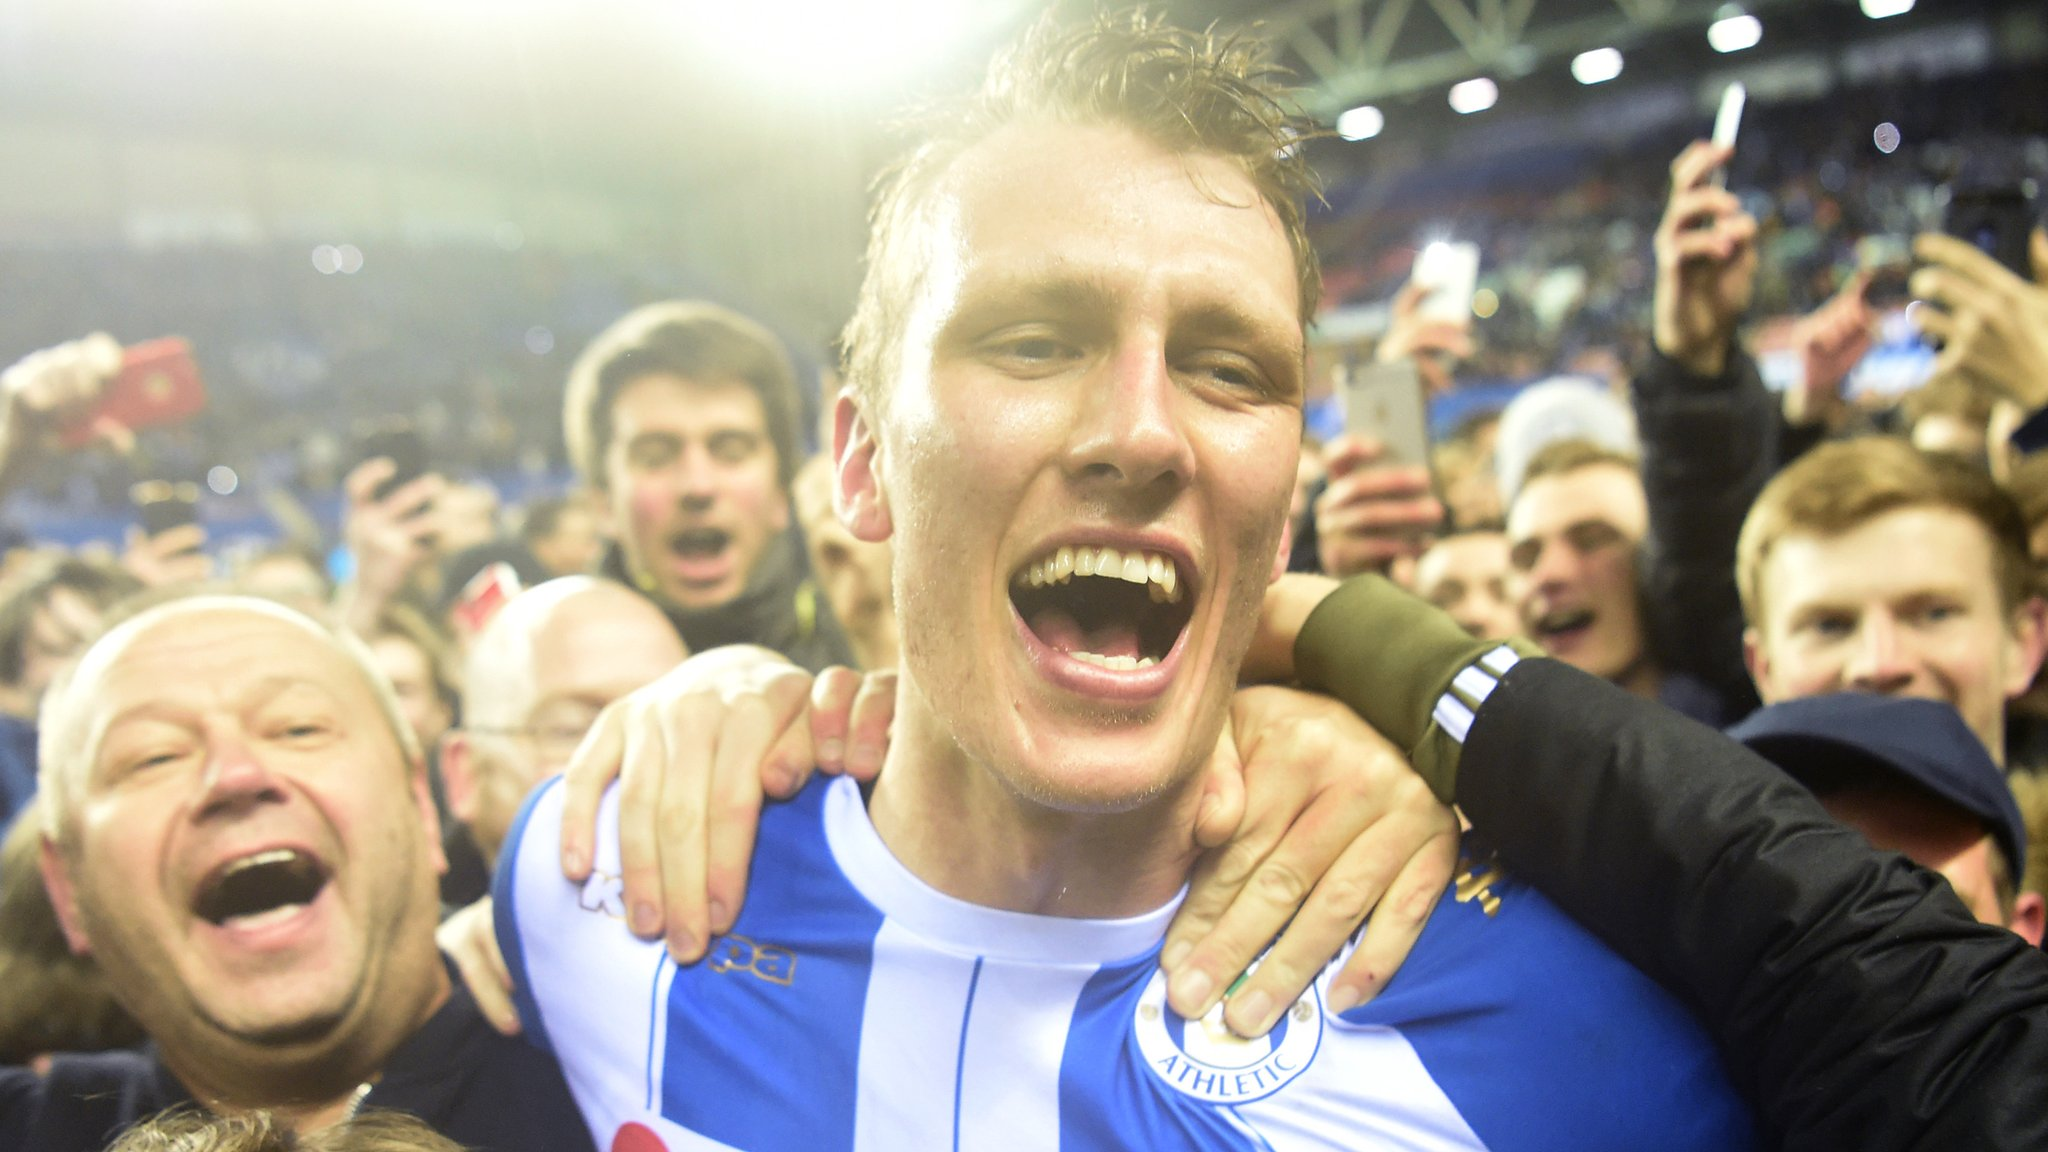 brand new 0e7c3 a17fe FA Cup  Brighton s Dan Burn aims for fifth-round glory - From pushing  supermarket trolleys to the FA Cup fifth round - can Dan Burn take Brighton  into the ...